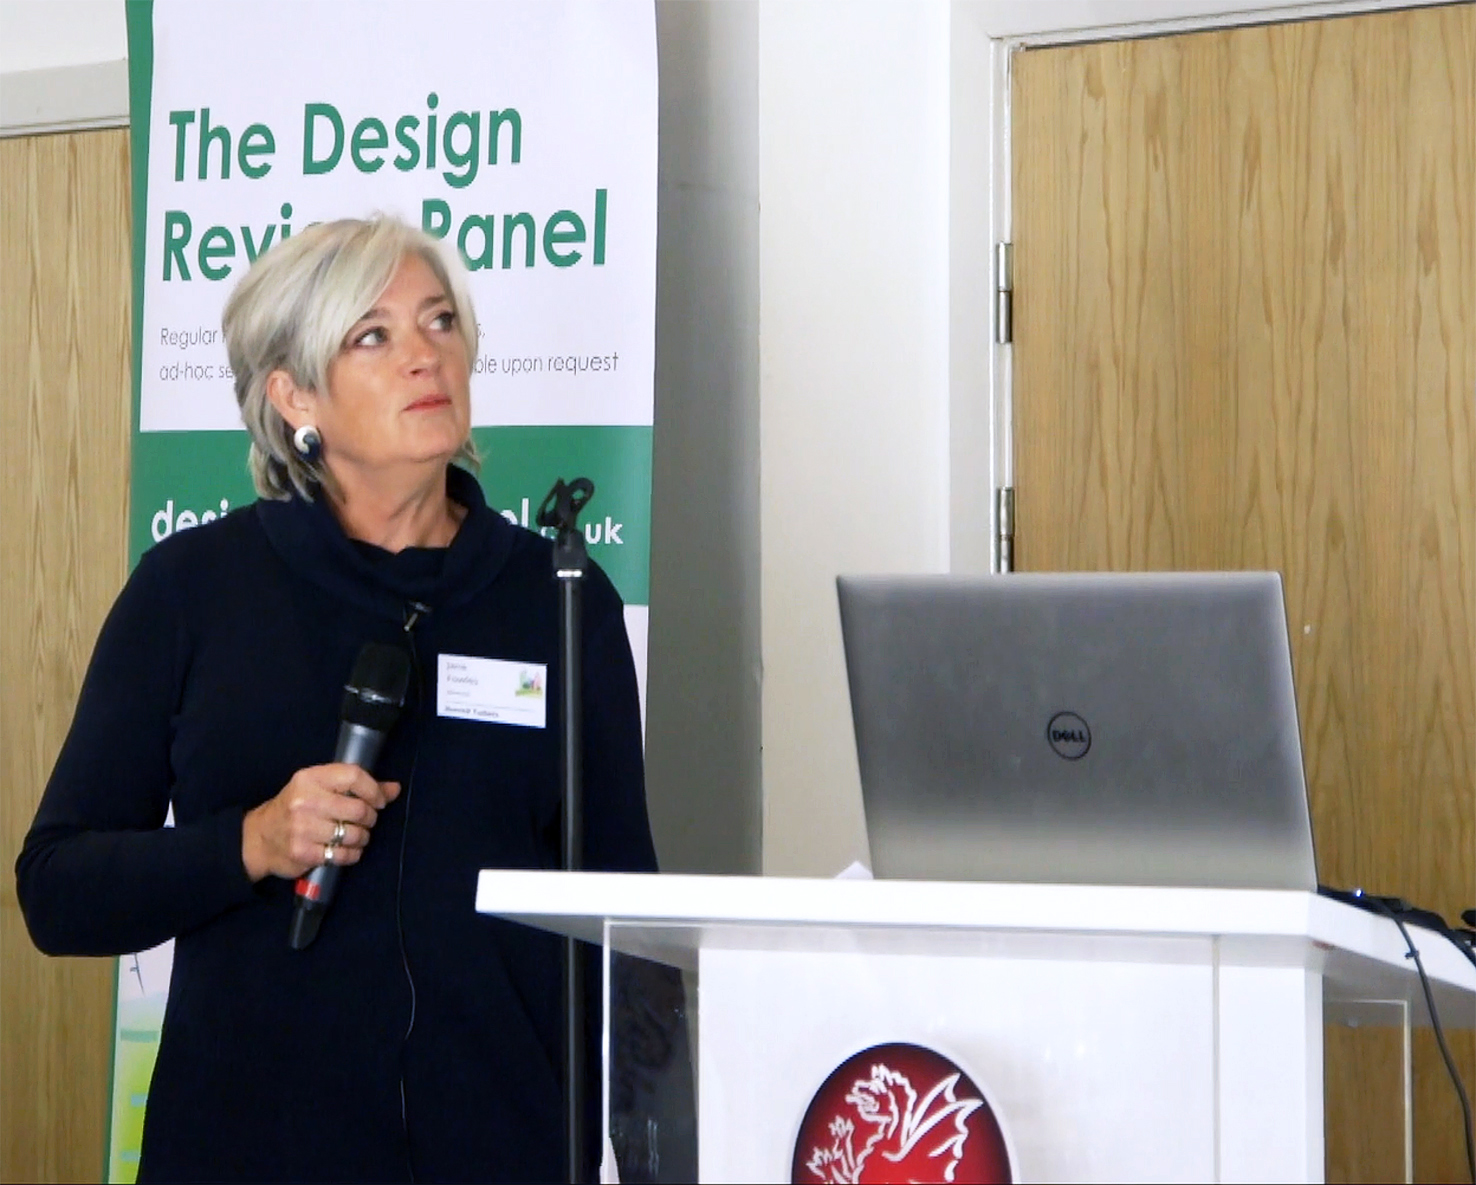 Jane Fowles at Design Review CPD